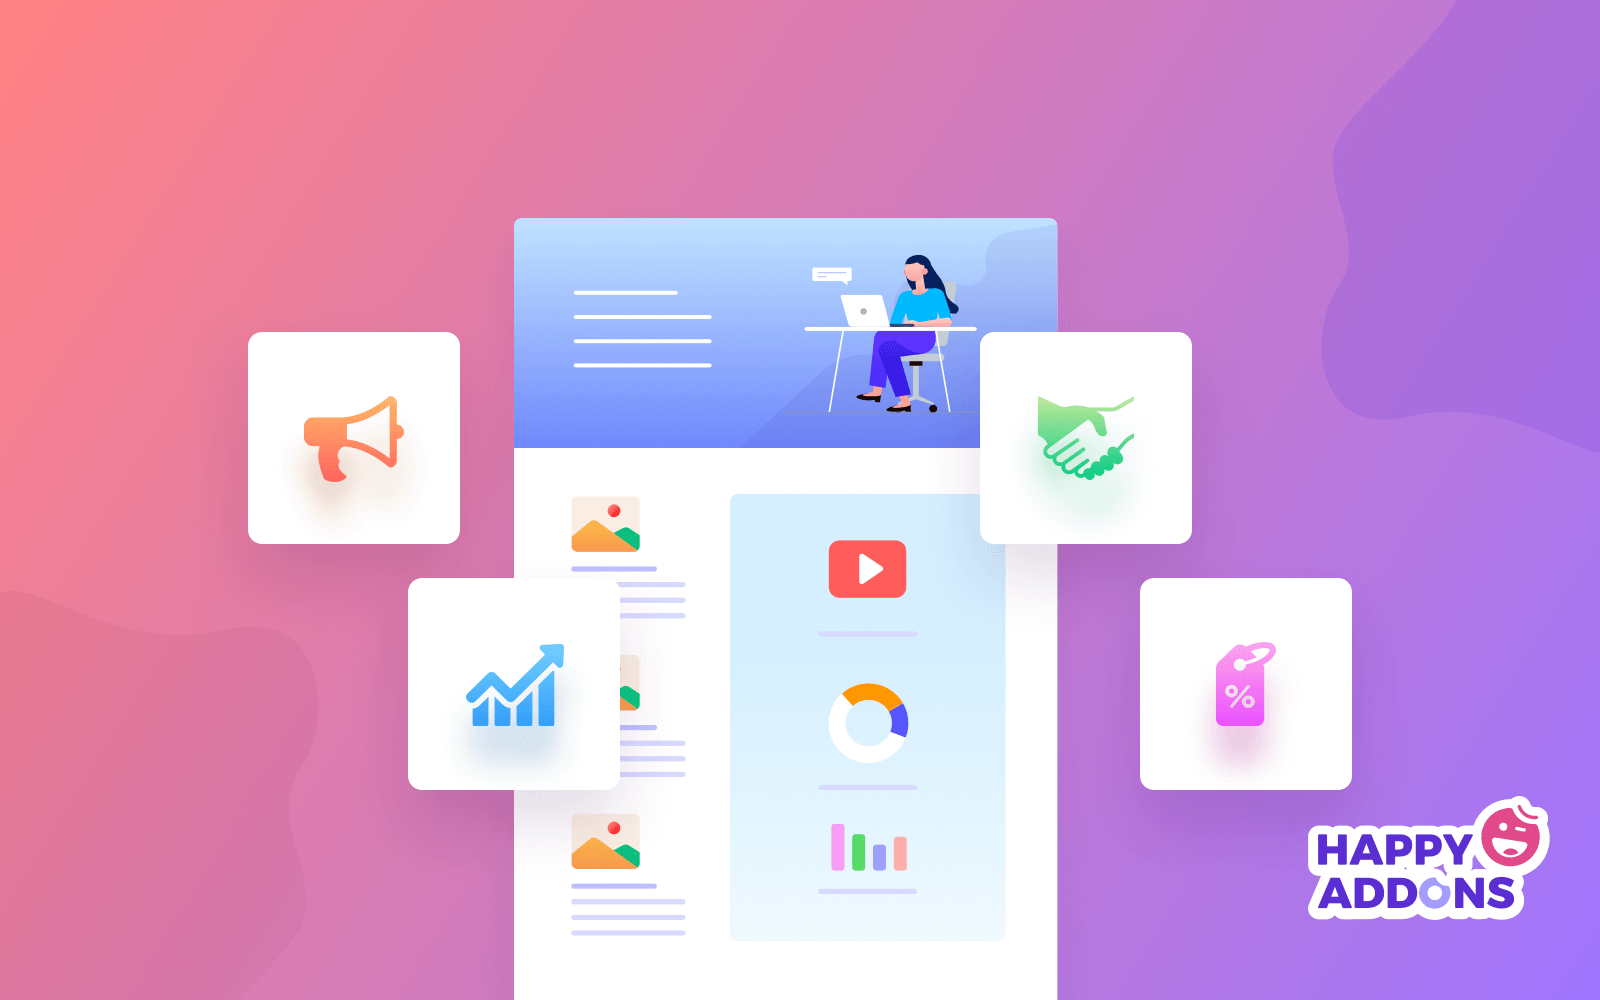 bMost importantly, you've learned some landing page best practices. So follow all the essential tips and tricks on smart landing page design. If you still have any questions about this article, feel free to leave us a comment. And share your experience with us about the landing page